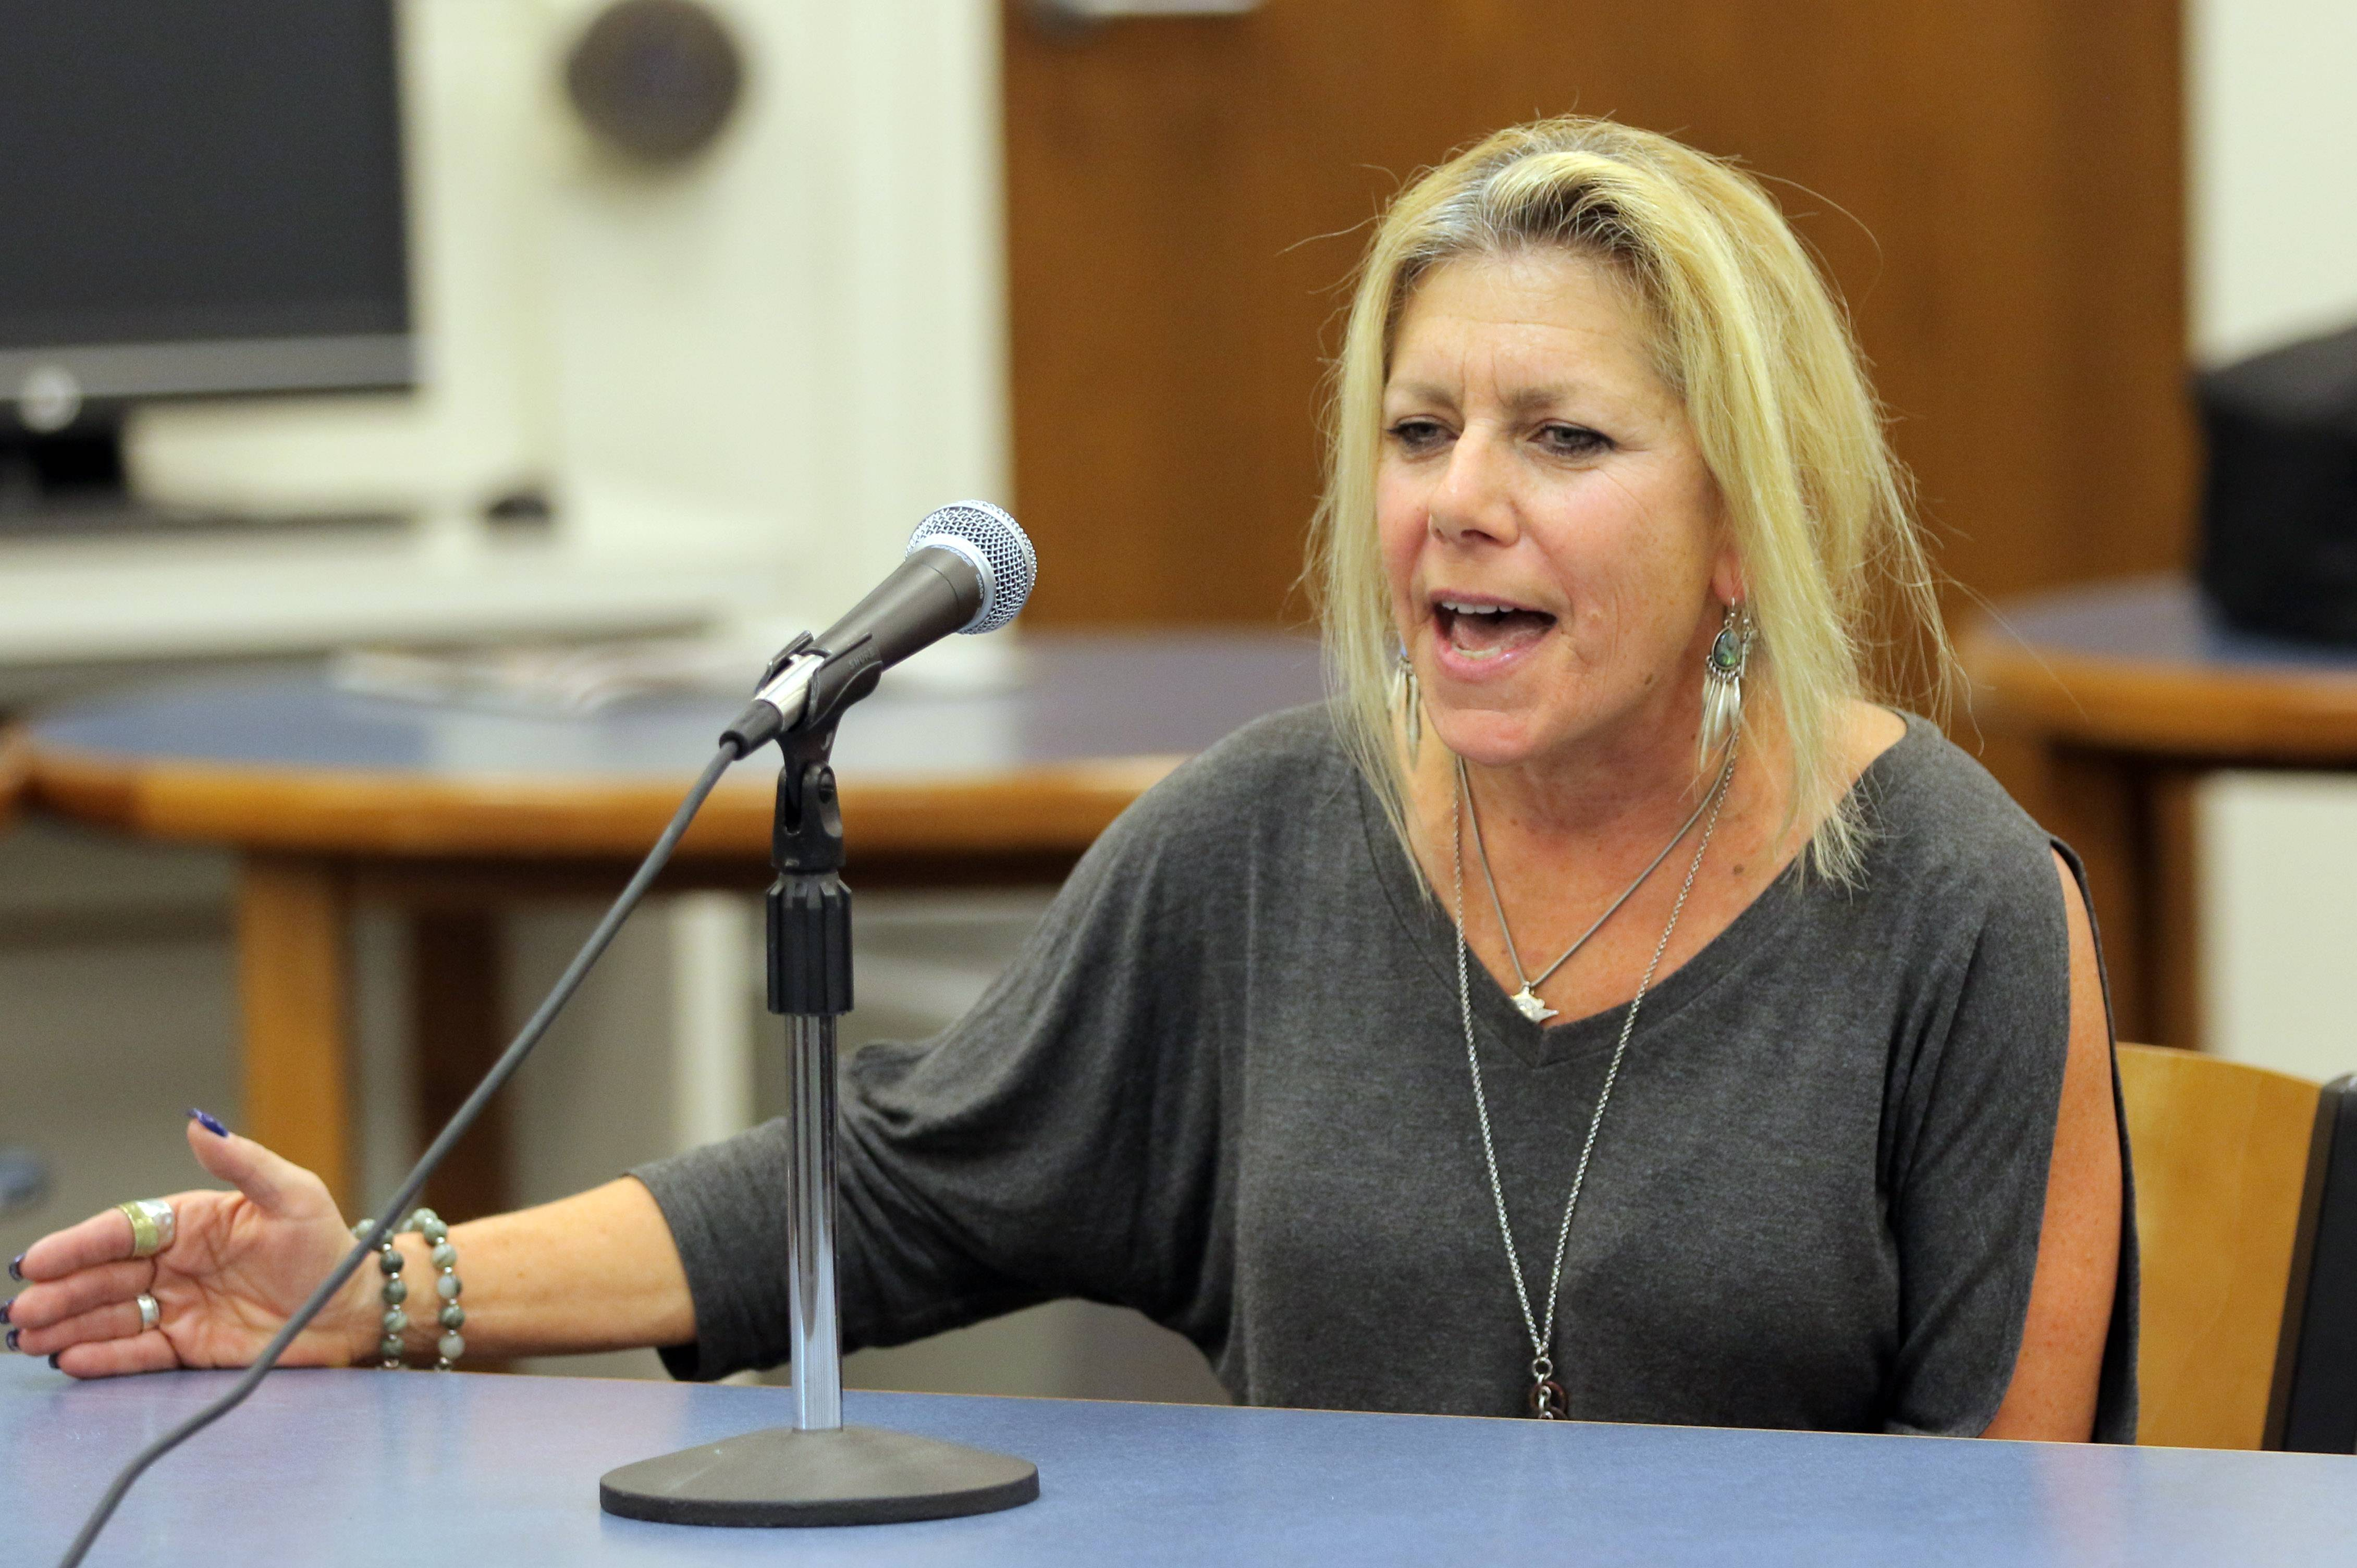 Laurie Stutzman, whose son is a Lake Zurich High School football player, said she supports the team and its coaches, She spoke at Wednesday night's Lake Zurich Unit District 95 board meeting and complimented officials for limiting public information in an effort to protect students' privacy during a football team investigation.